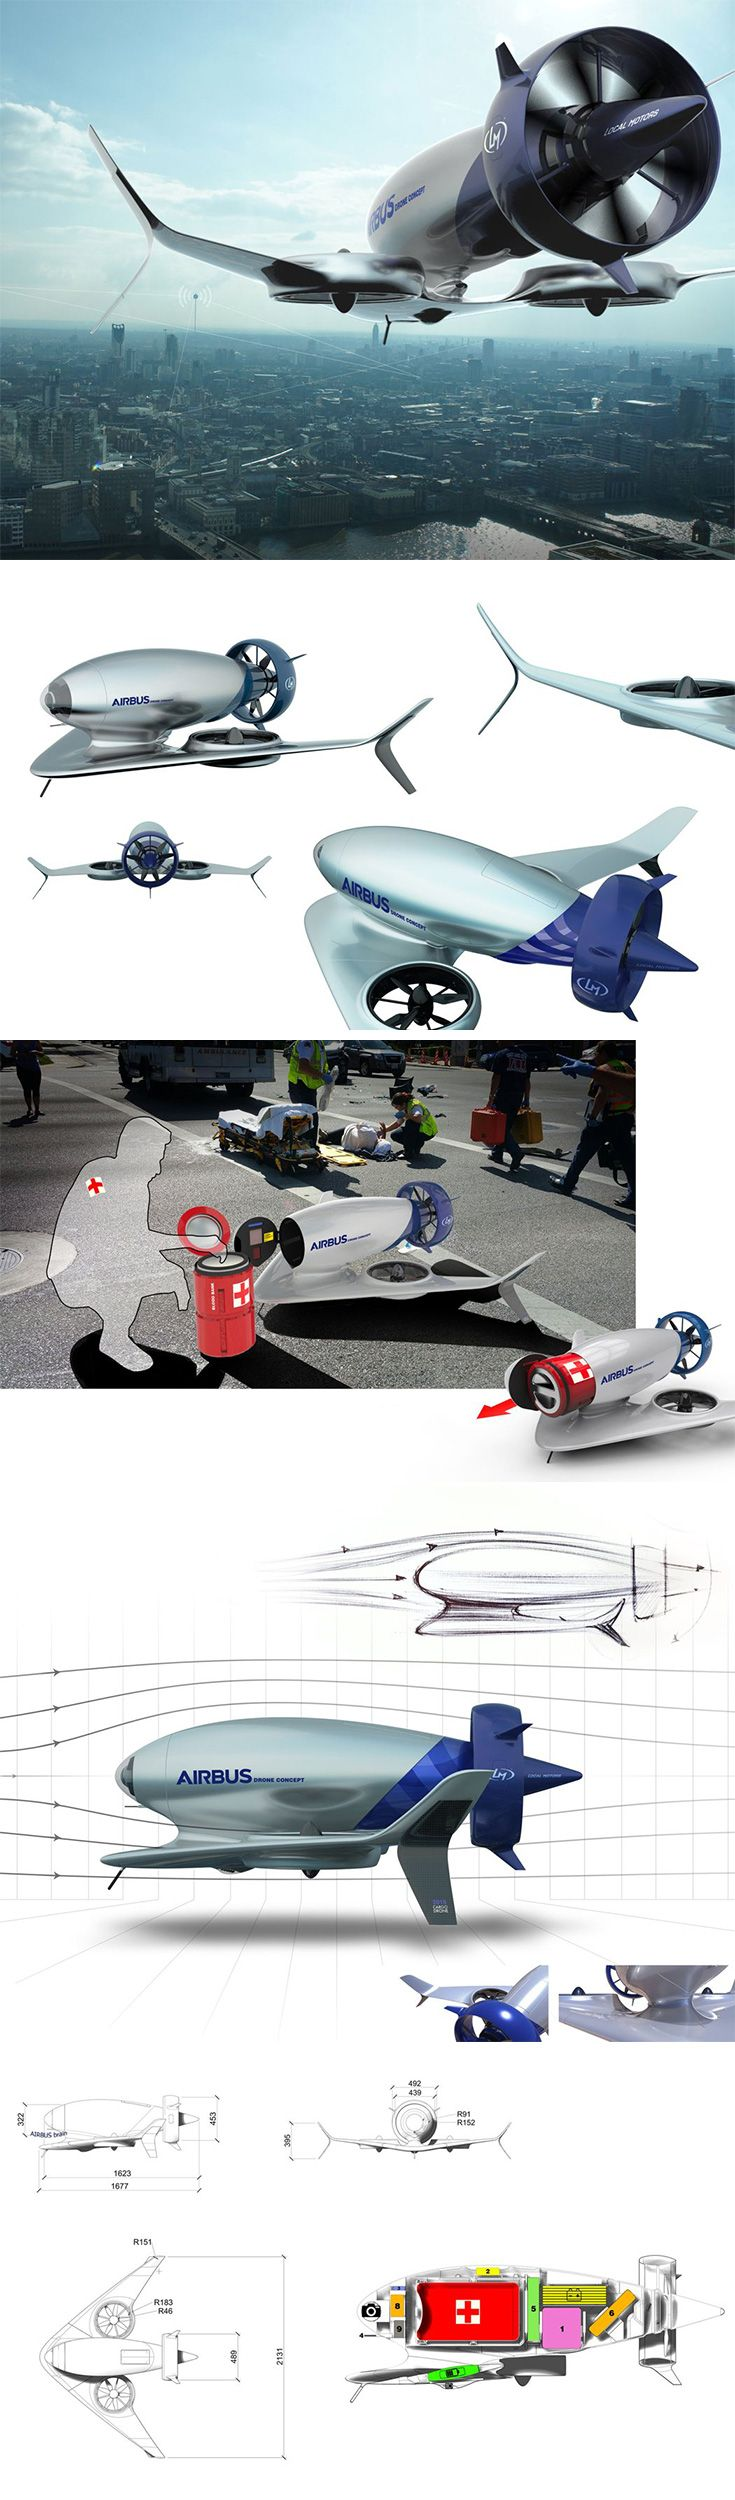 Taking inspiration from Airbus' existing family of cutting-edge aircraft, the Airbus A-180 Drone is less concerned with moving people and more about helping them during emergencies. Able to take off and land vertically or horizontally, it can safely enter danger zones. Upon arrival, it releases a cargo capsule capable of transporting everything from medicine and antivenin to supplemental blood and even organs.